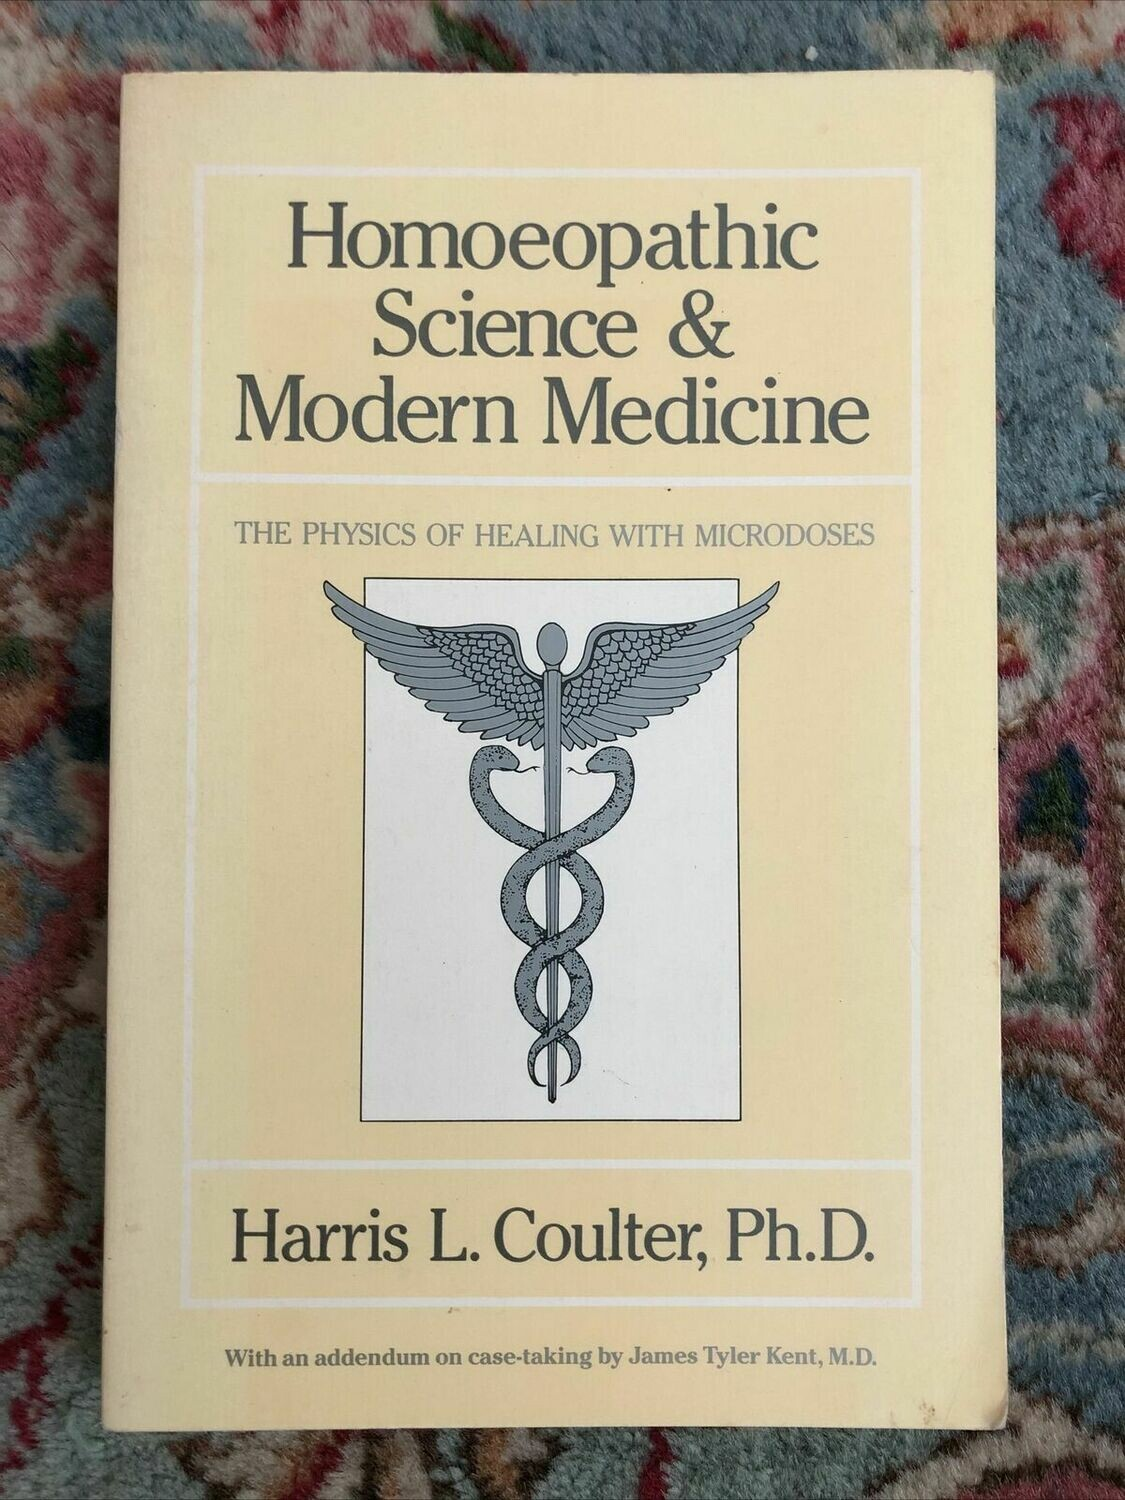 Homeopathic Science and Modern Medicine*